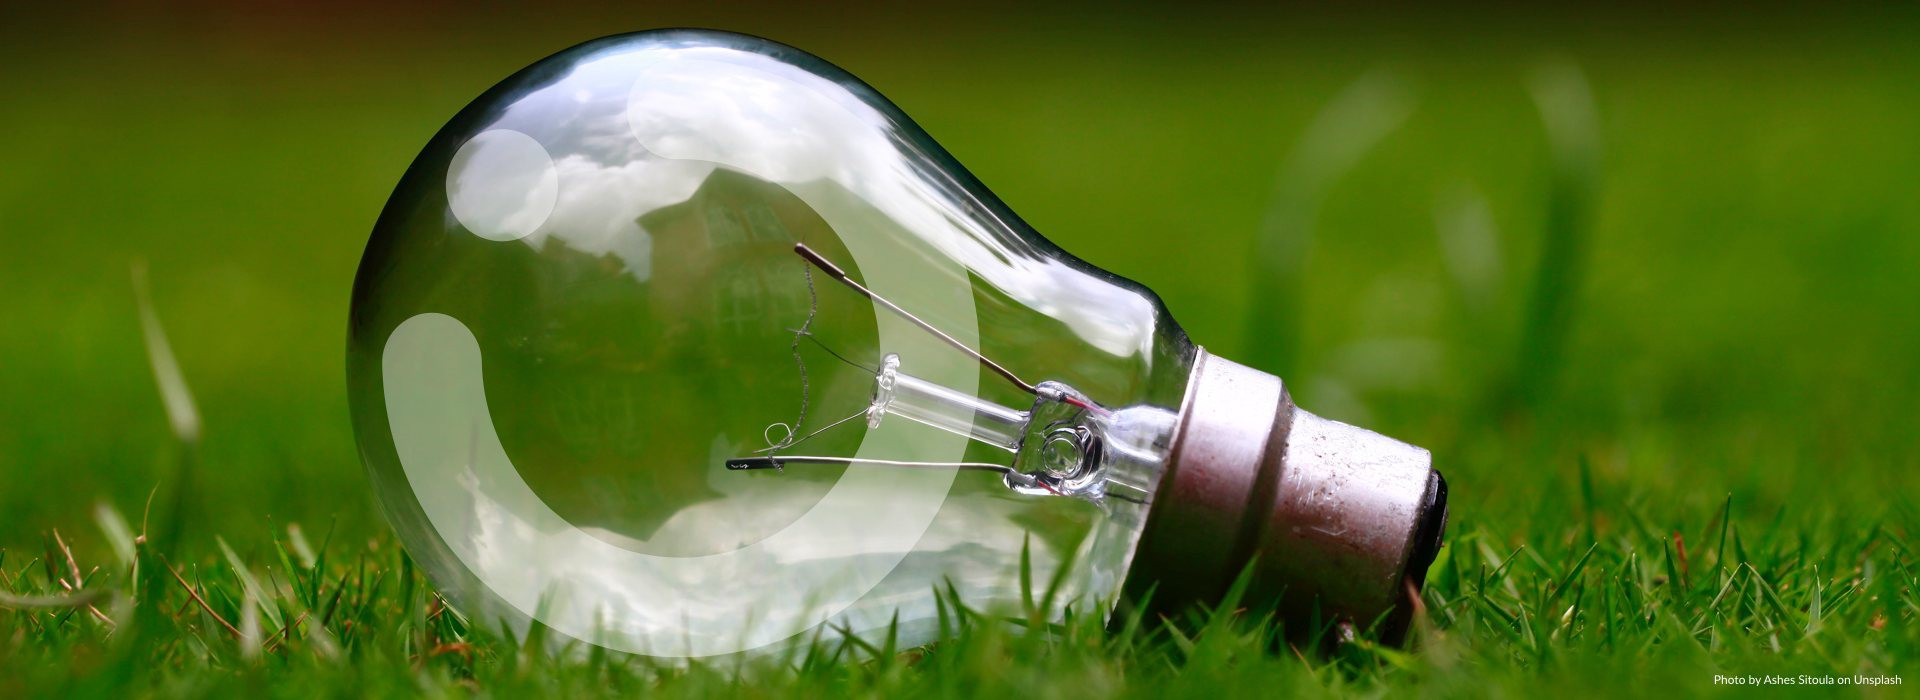 How do you feel about energy efficiency?